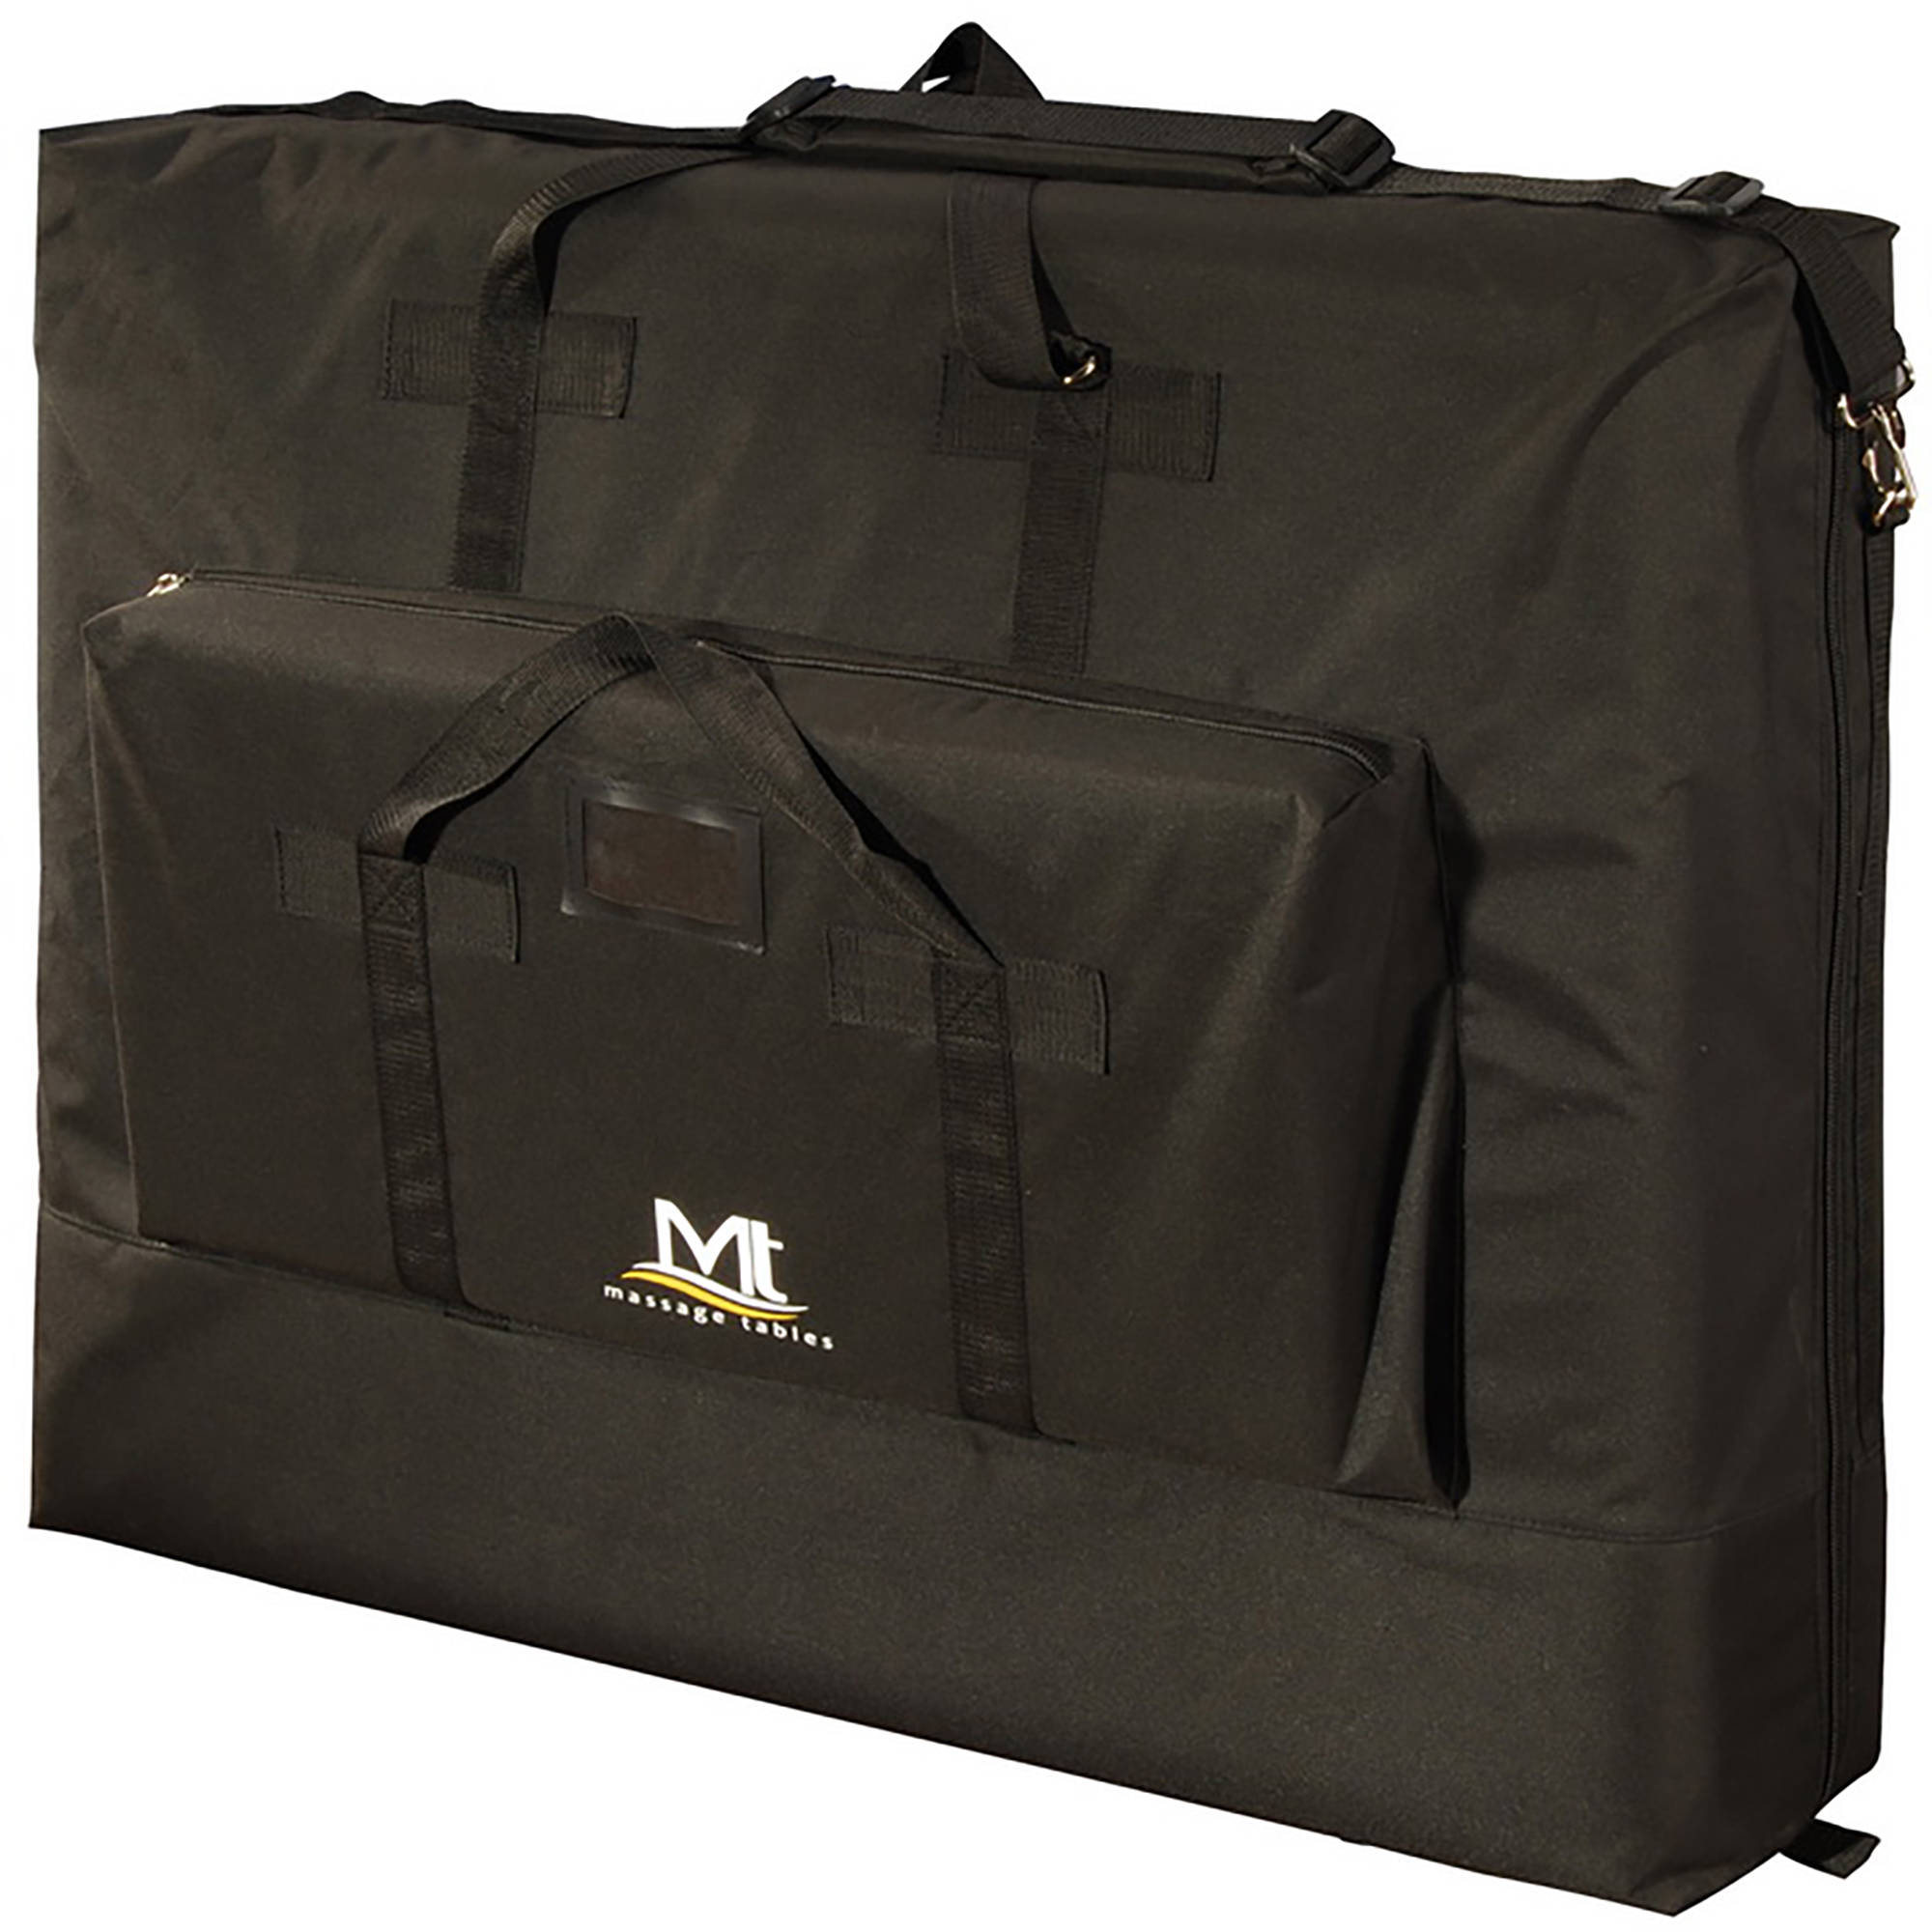 MT Massage Standard Carrying Case